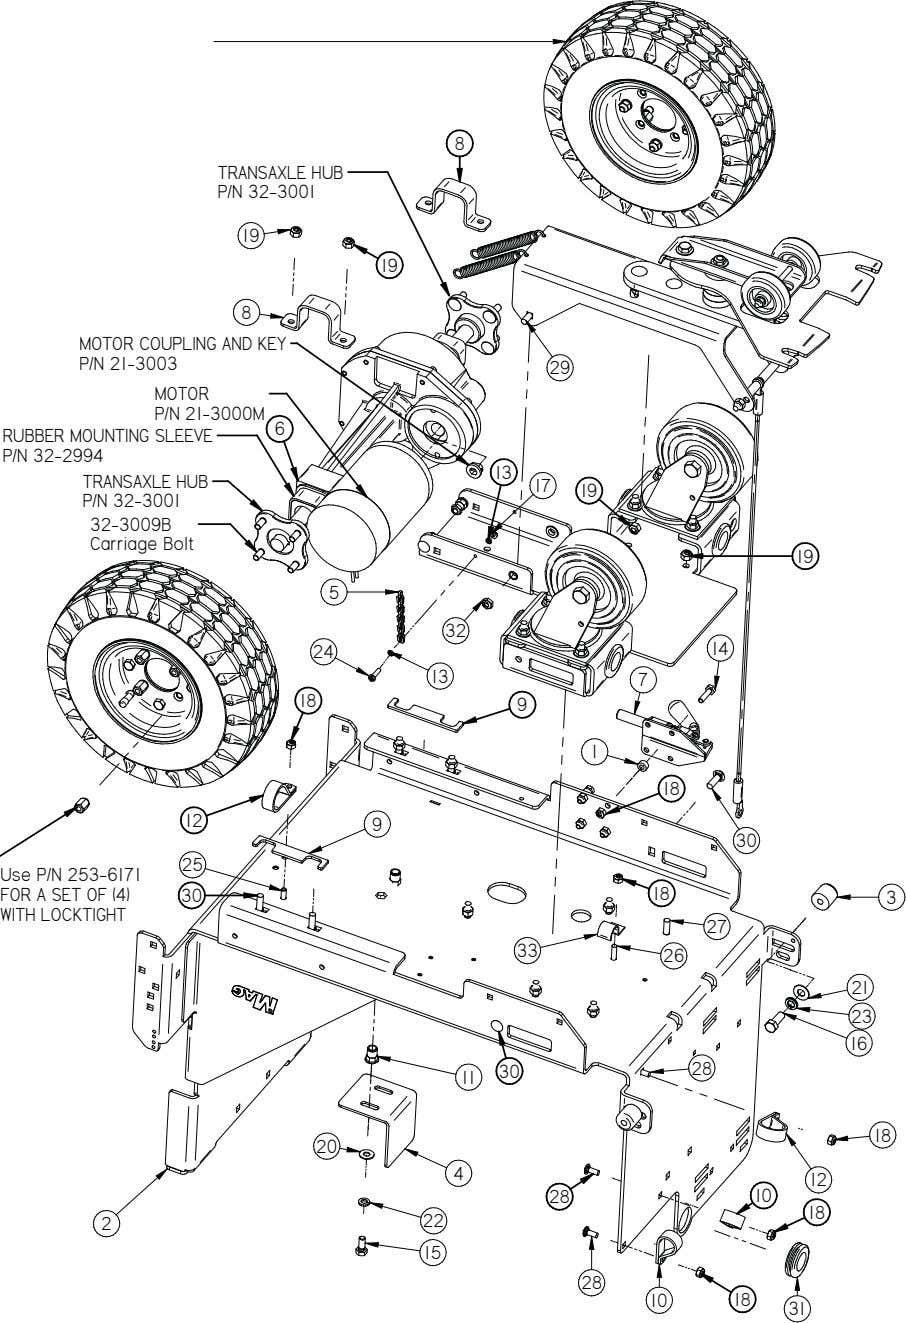 10 Frame Assembly 10 Magnum Parts Manual V13.0315